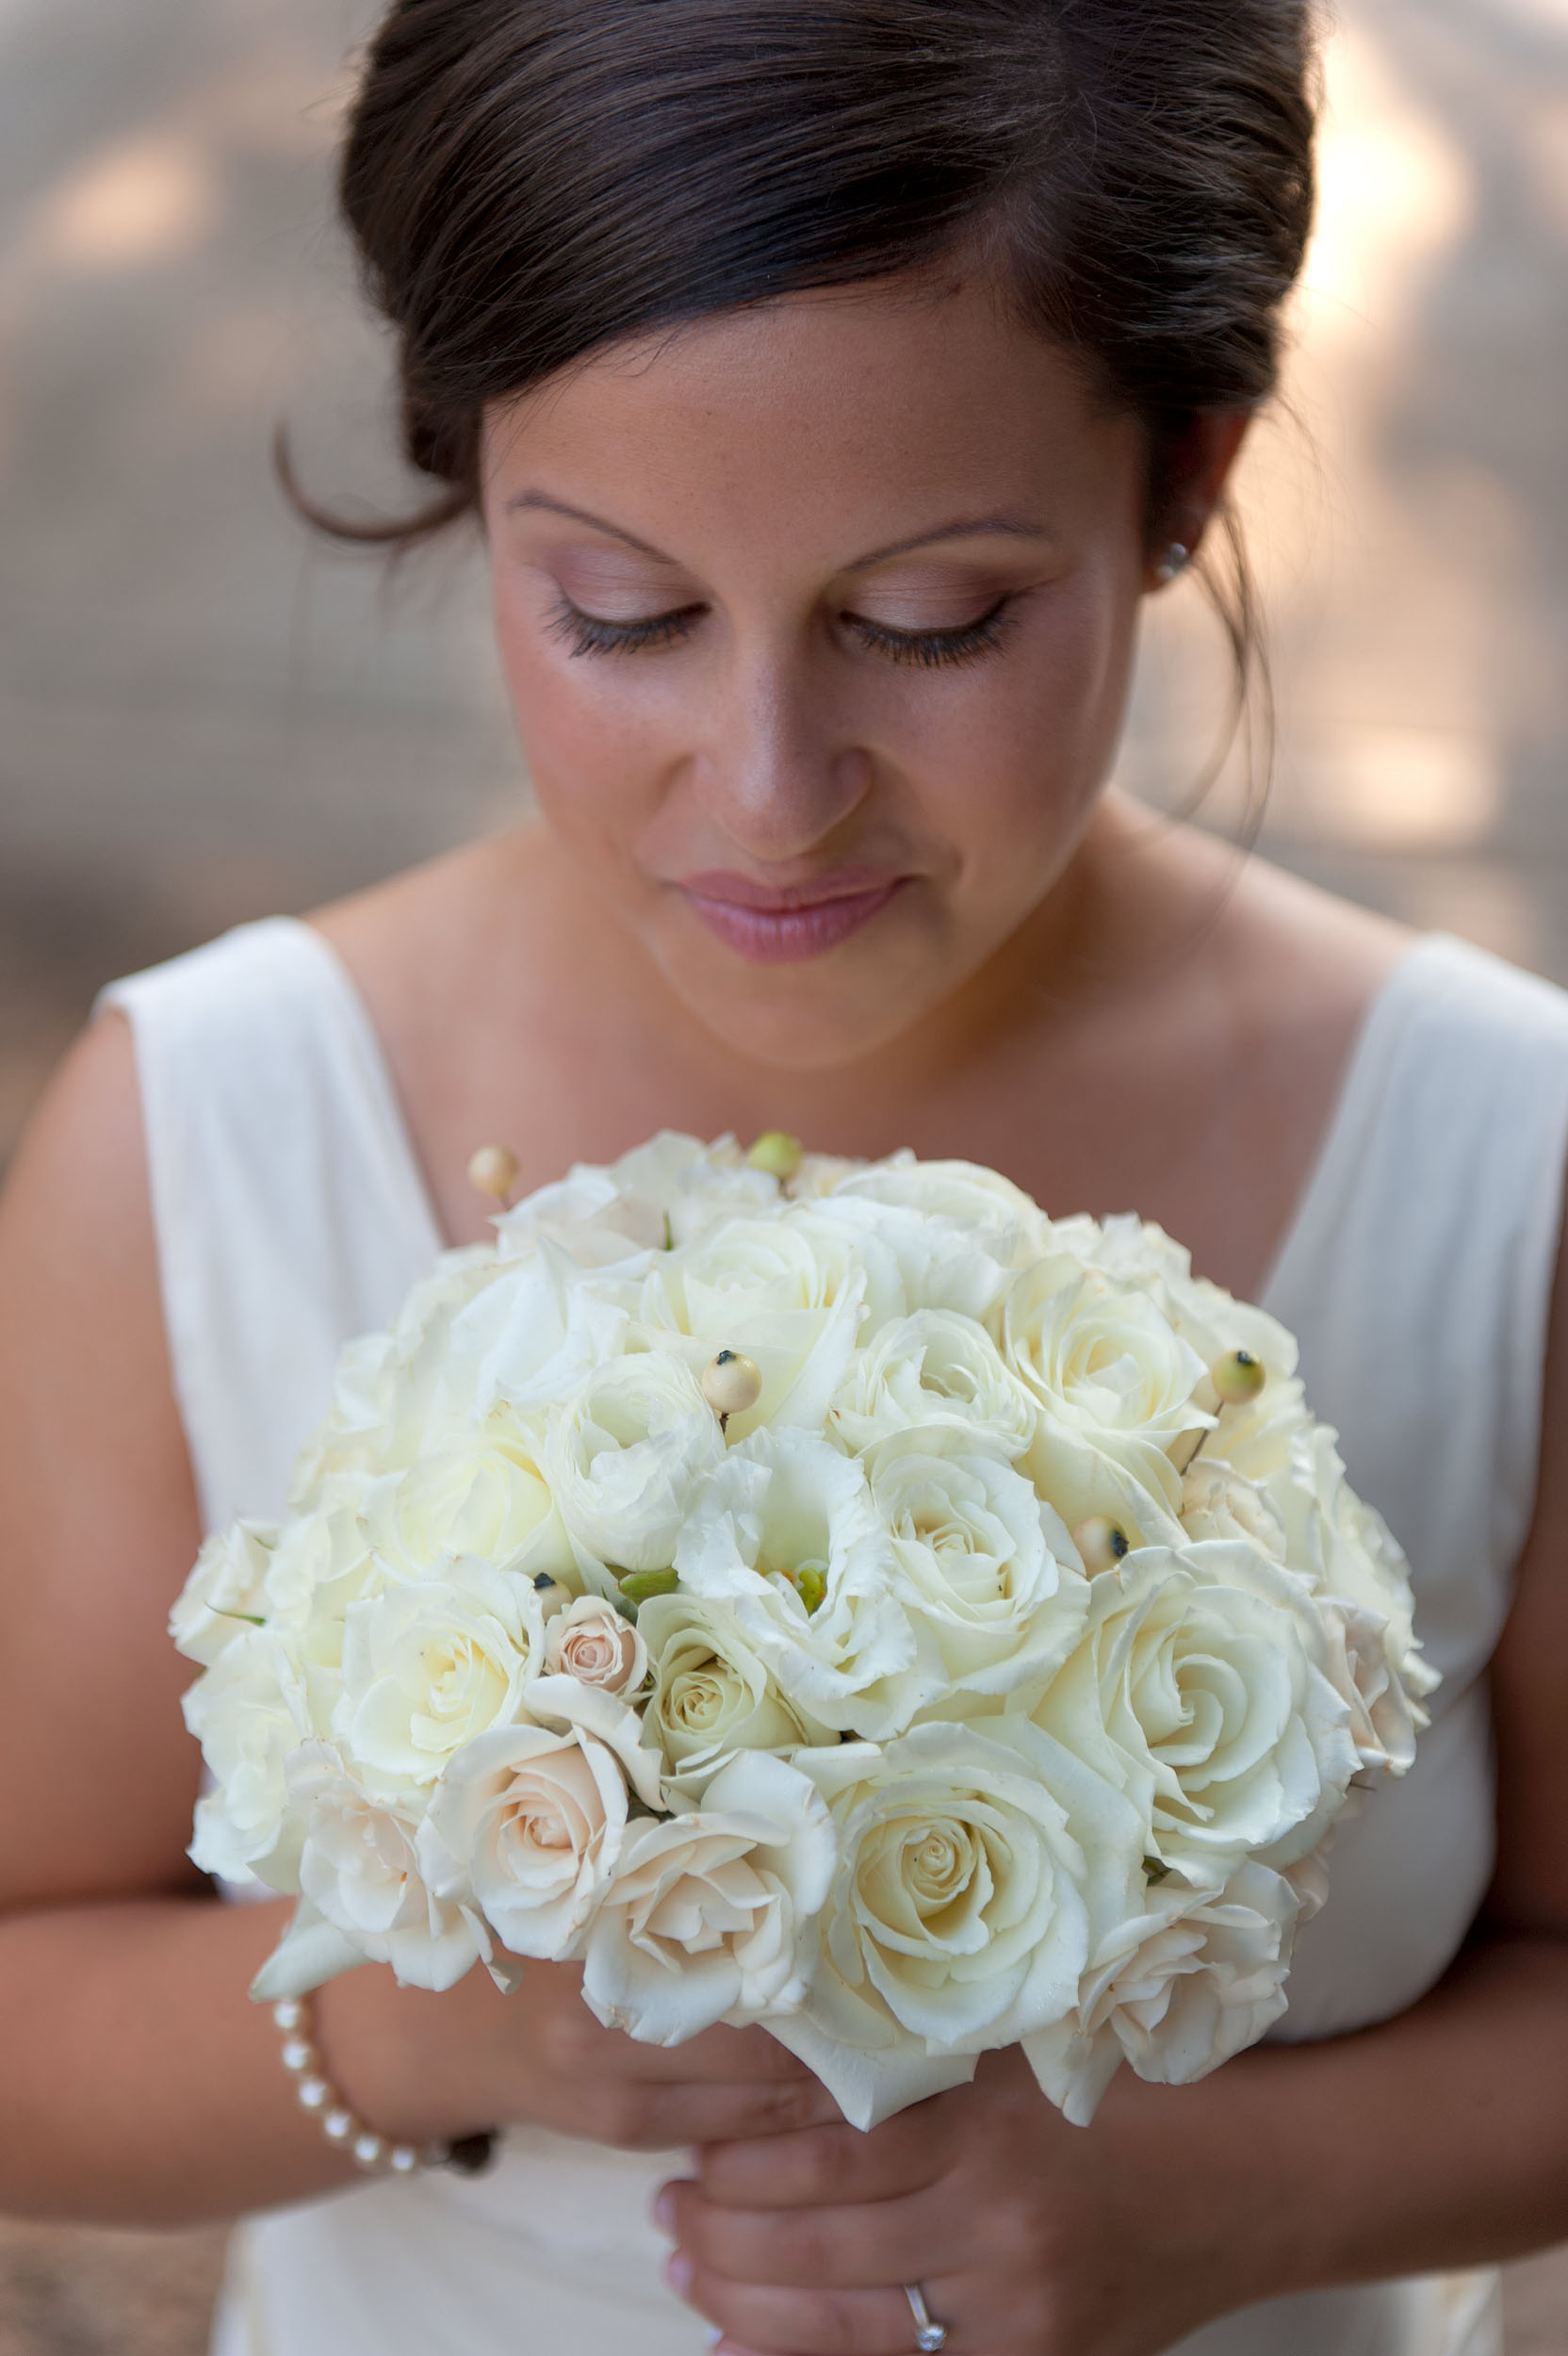 Bride with bouquet at Citrus Park Wedding & Events in Riverside.